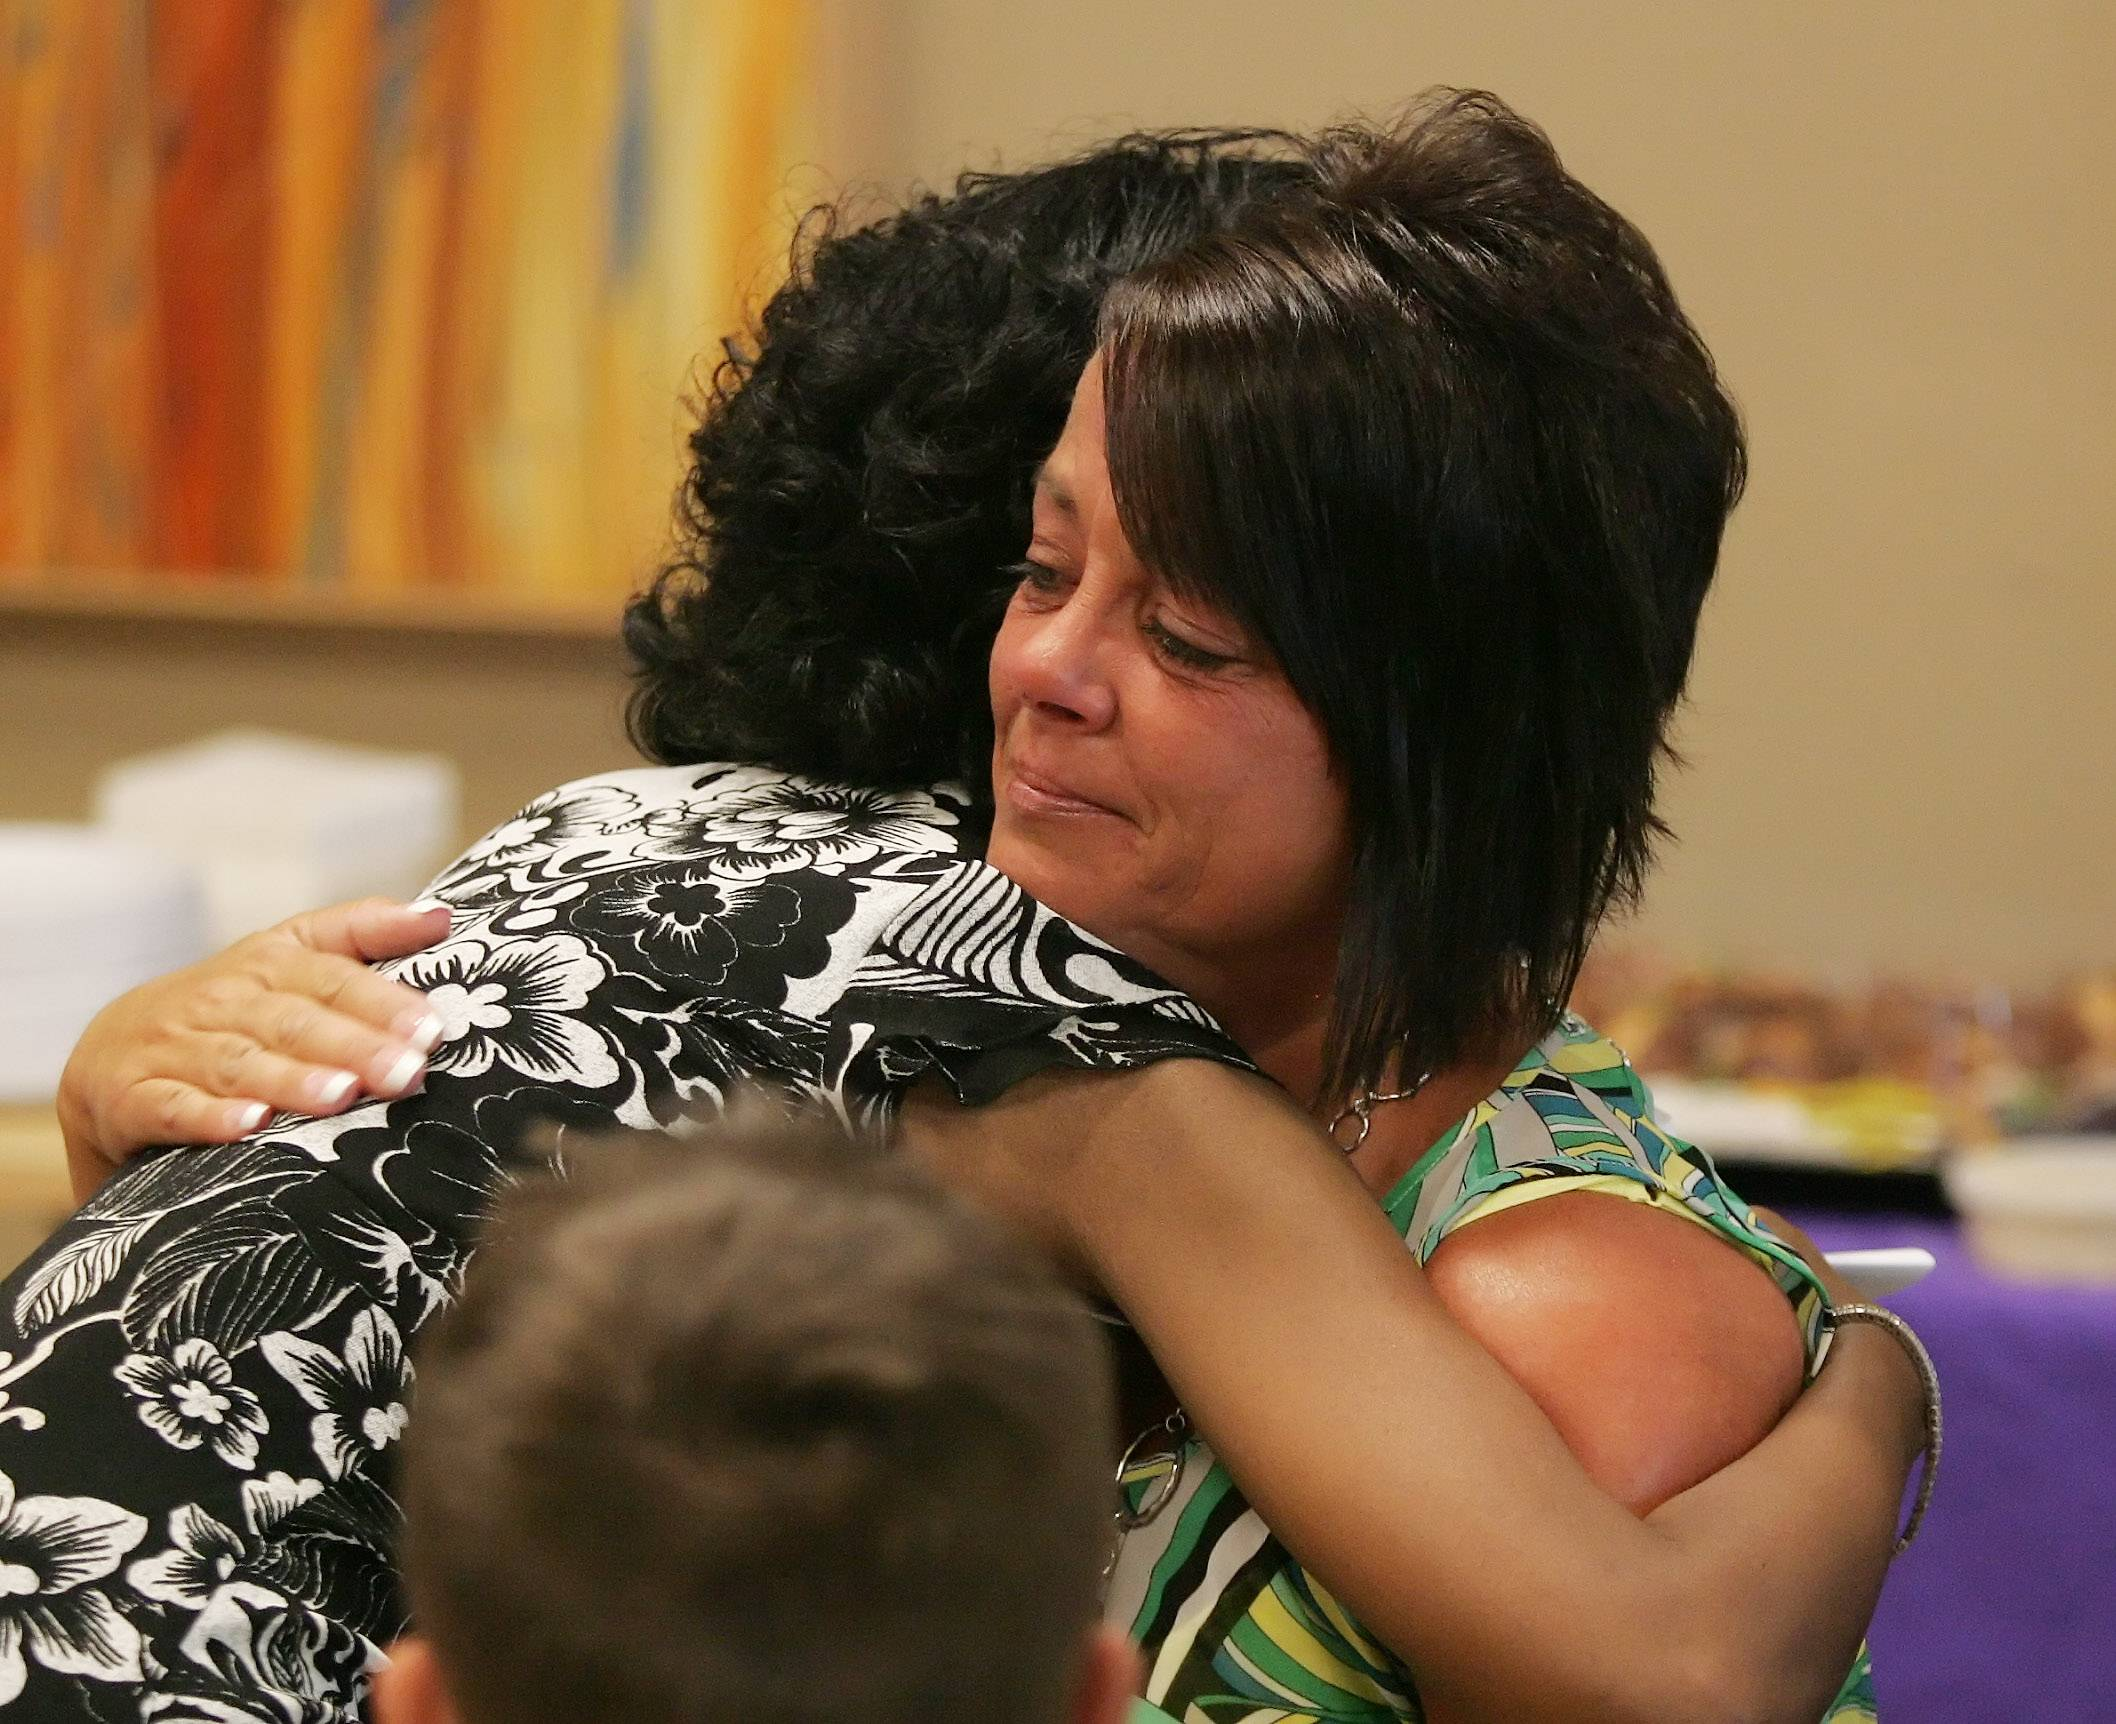 Heart transplant patient Melody McIntosh, left, hugs Kelly Swart, mother of Ashley Swart, during a meeting at Advocate Condell Medical Center in Libertyville on Monday. Ashley Swart, a 20-year-old Purdue student, died of a brain aneurysm in 2013, and her donated heart saved McIntosh's life.